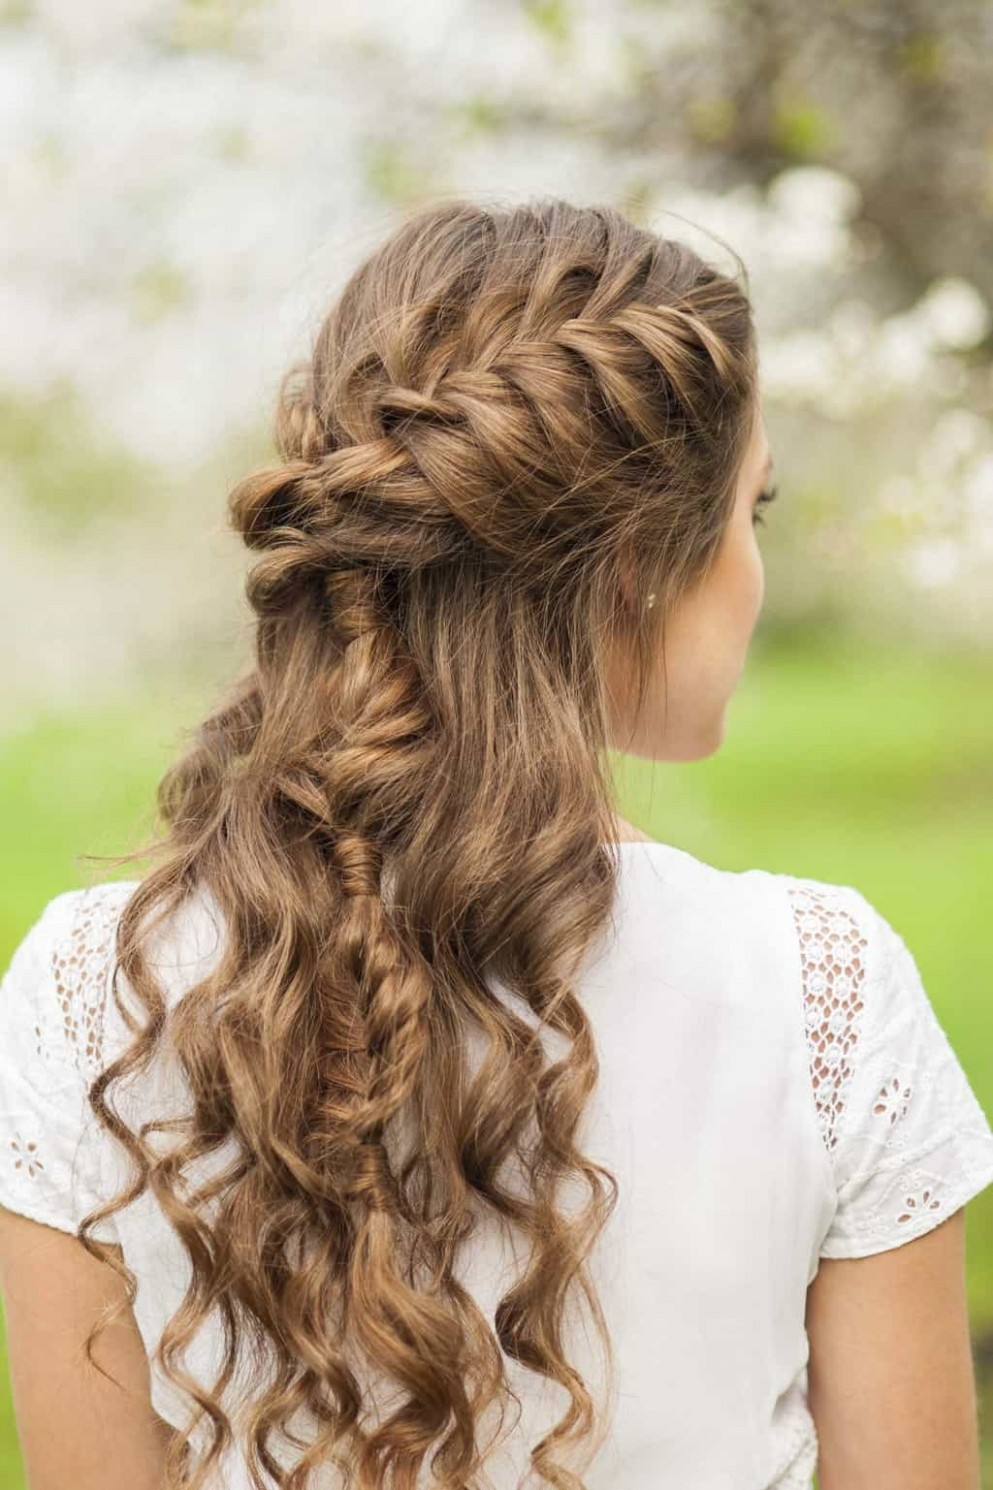 9 Elegant French Braids to Wear with Curly Hair